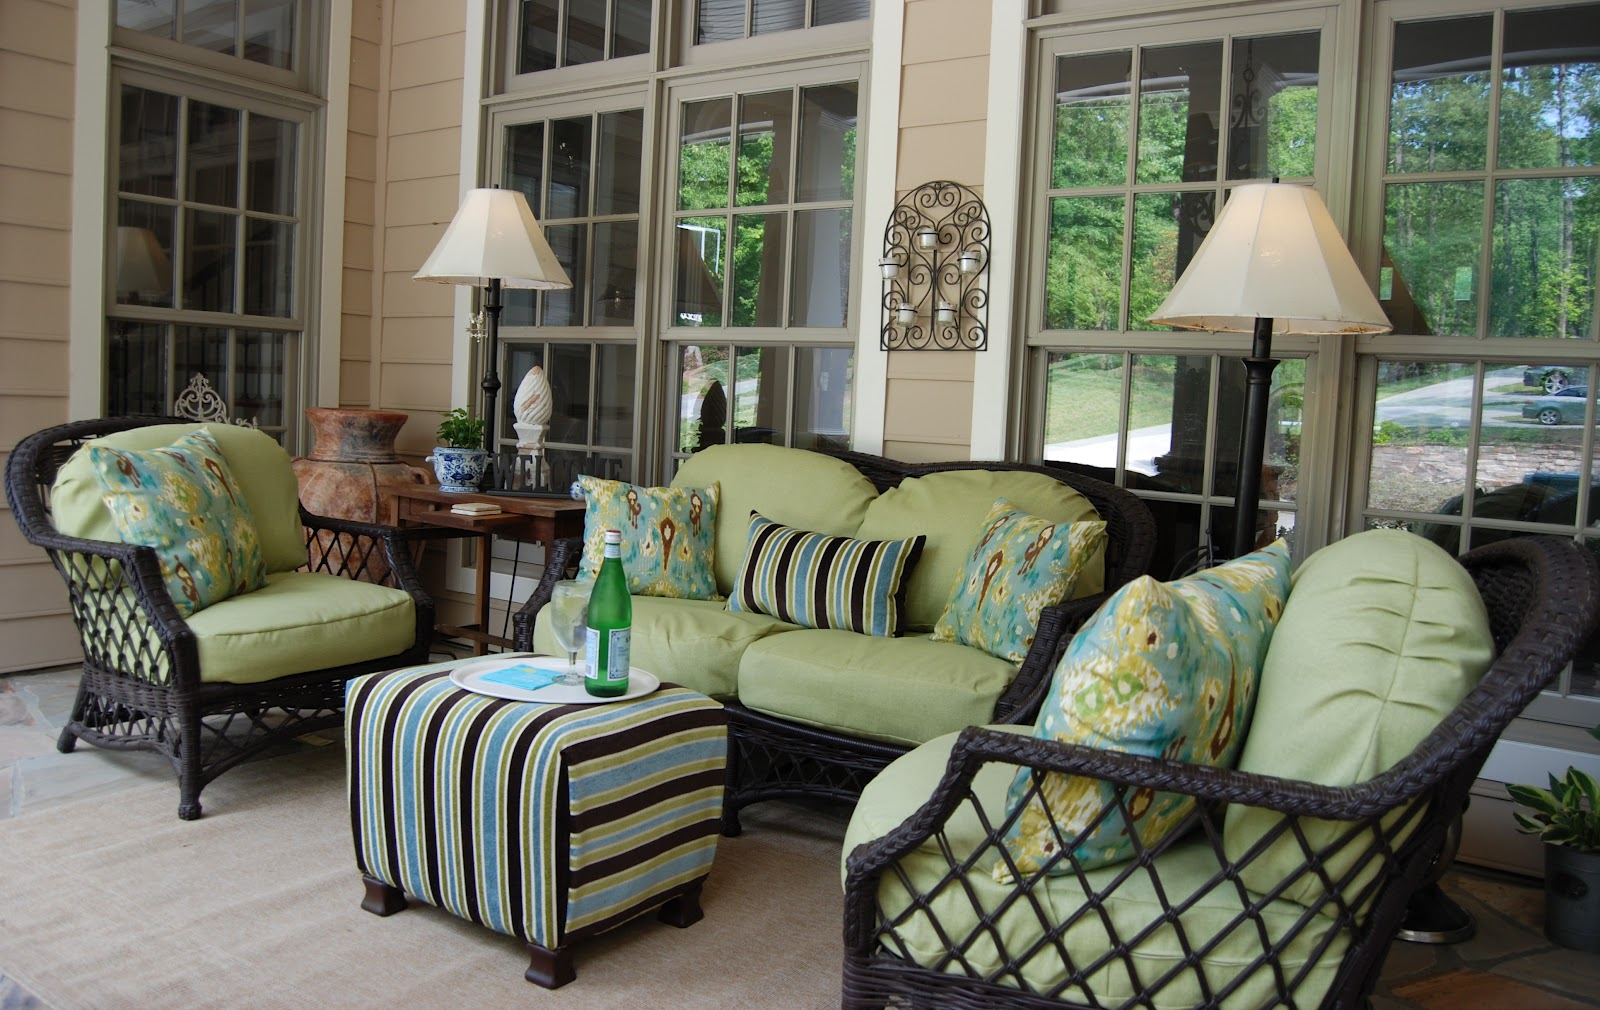 Imparting grace furnishing an outdoor room make your own - Create your own room ...